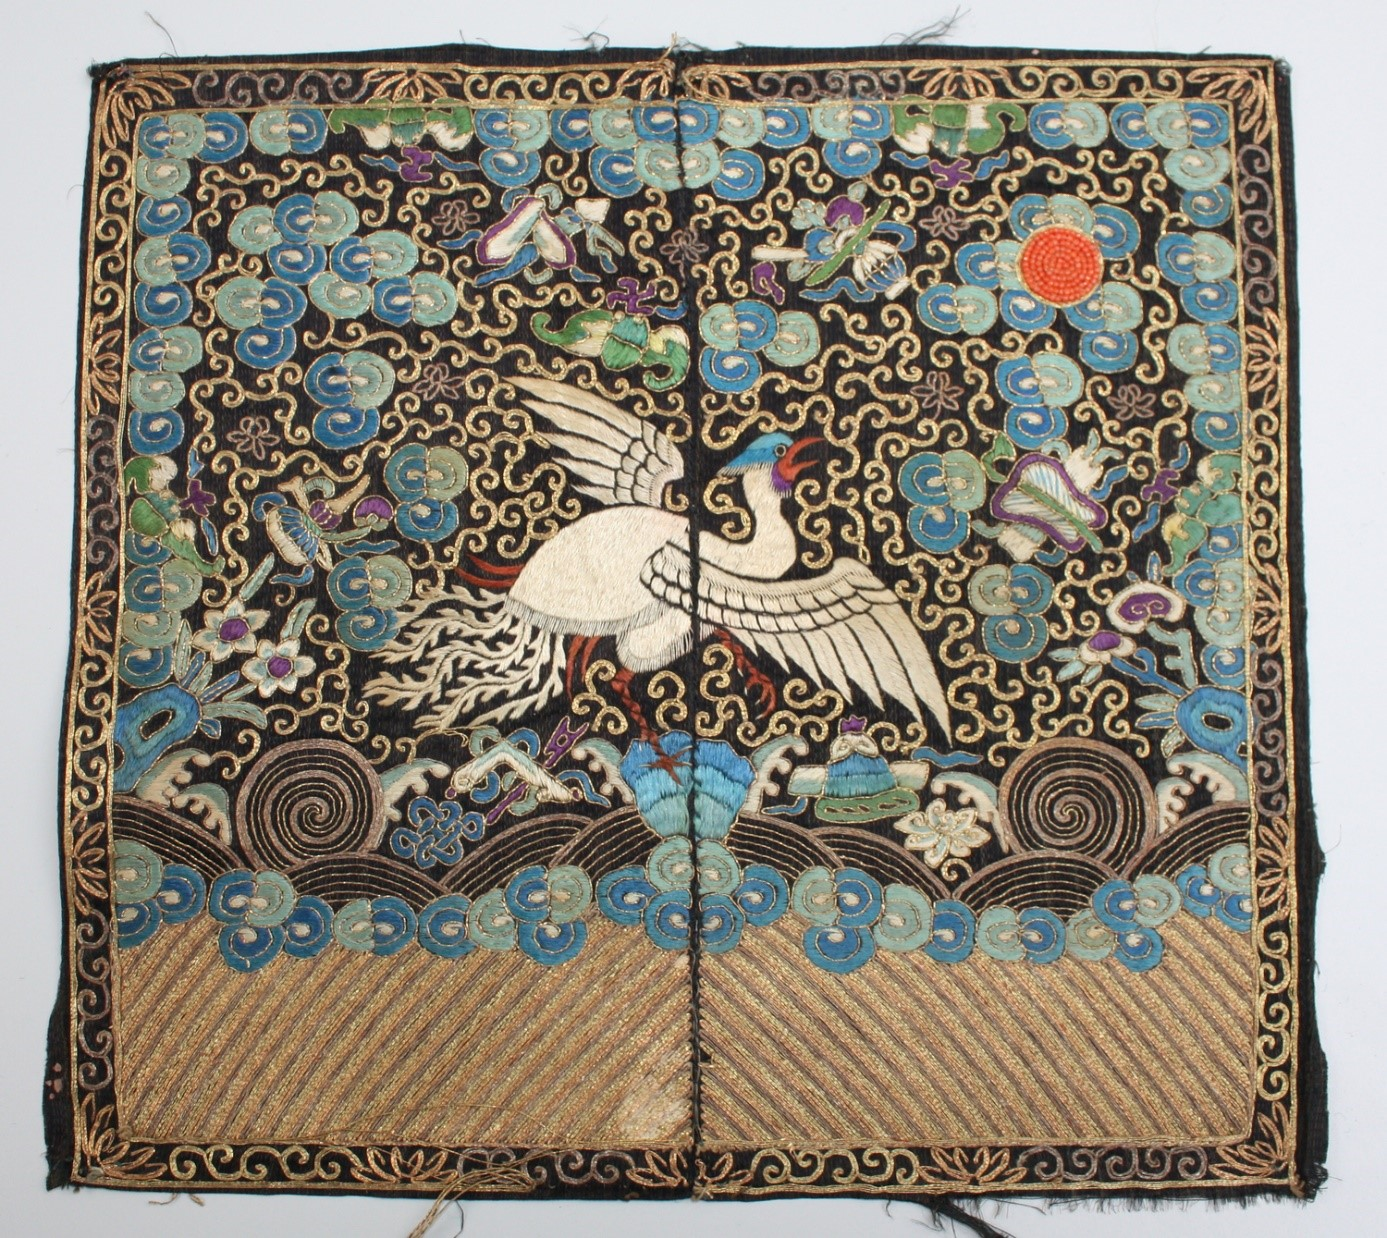 Embroidered rank badge from 19th century China (TRC 2010.0139b).